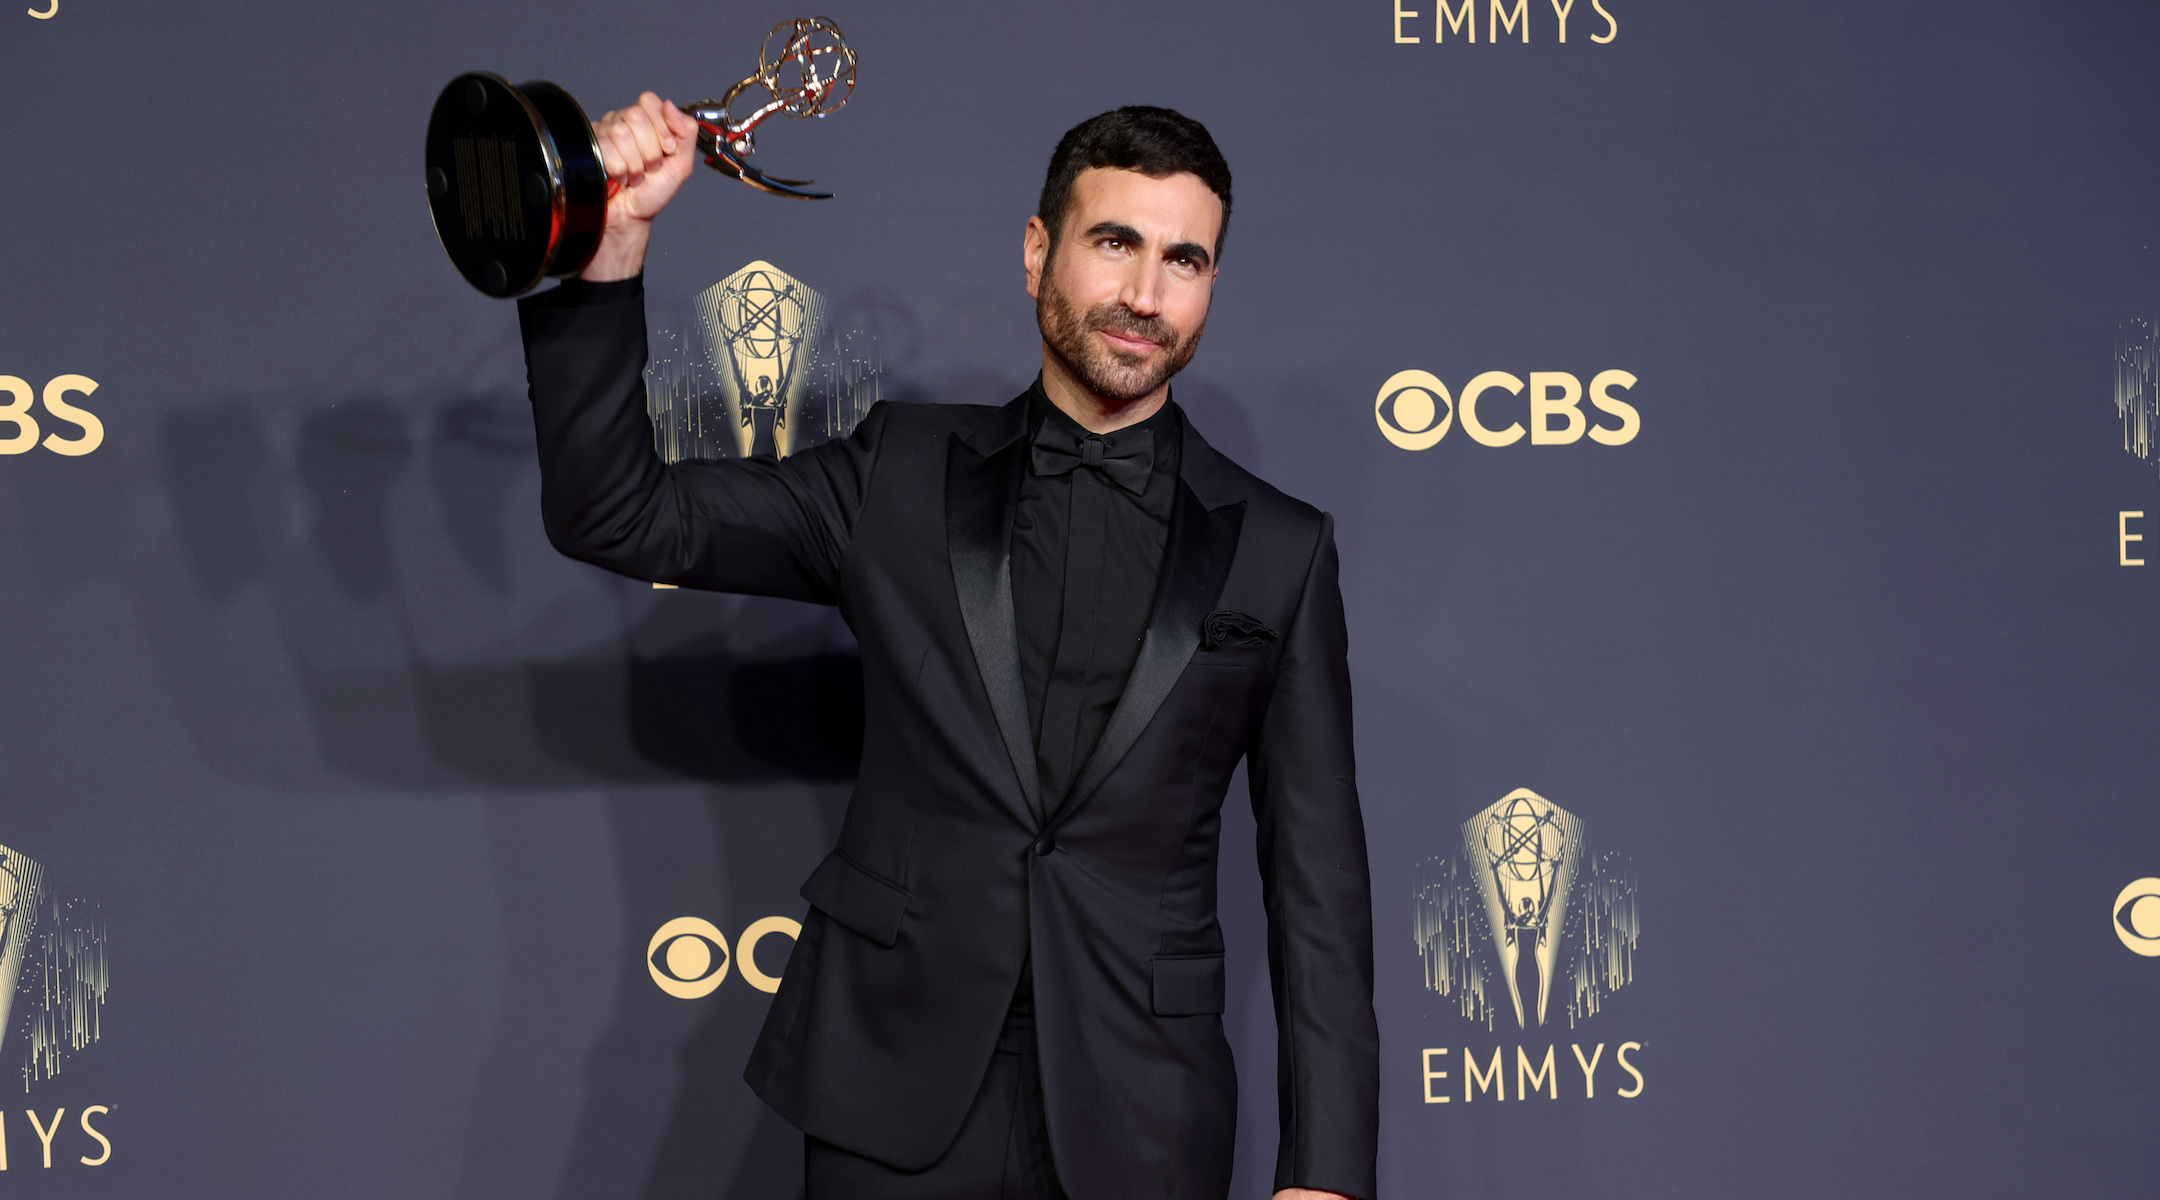 Emmys 2021: 'Ted Lasso' star, 'Queen's Gambit' director make up few Jewish wins, while acceptance...